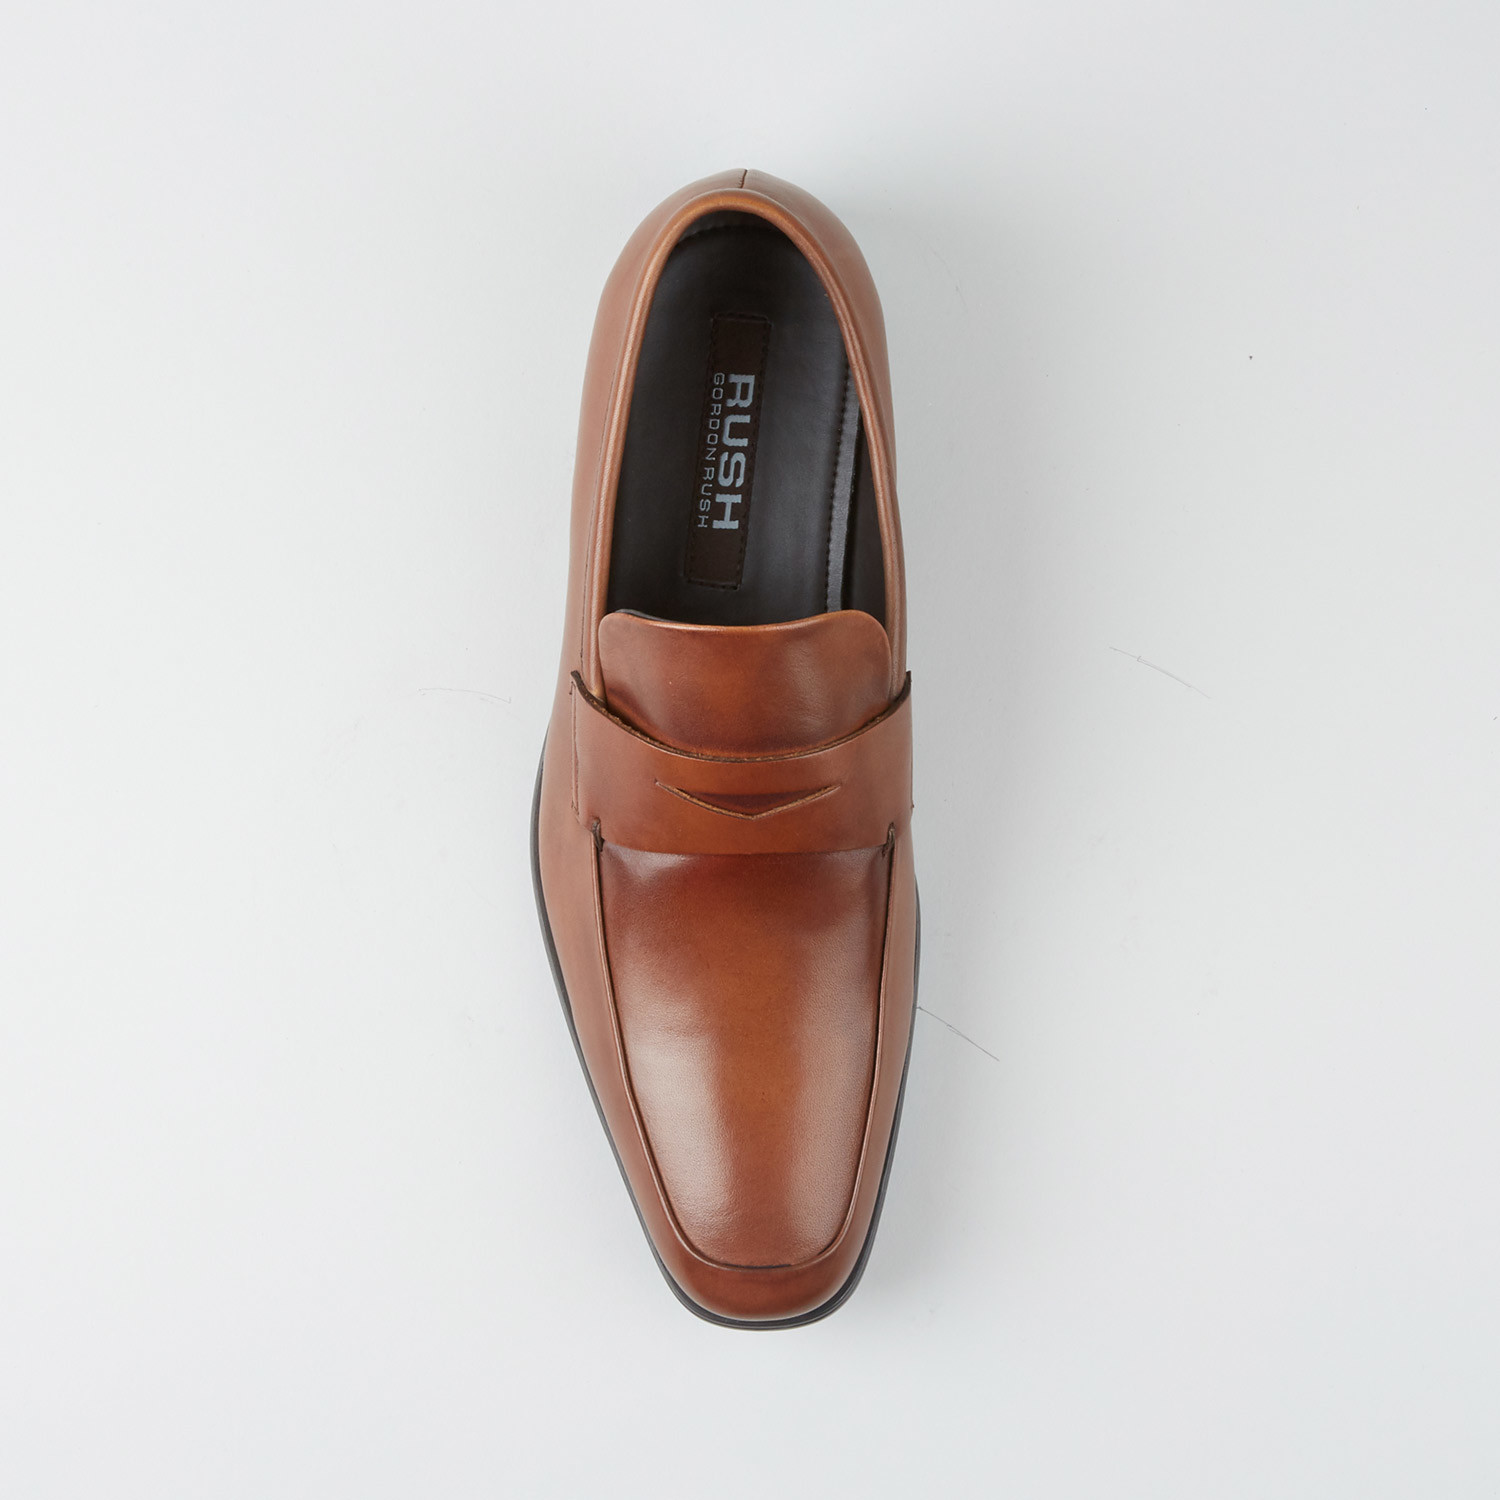 6b87f75a0b9 Smith Penny Loafer    Cognac (US  7) - Rush By Gordon Rush - Touch ...